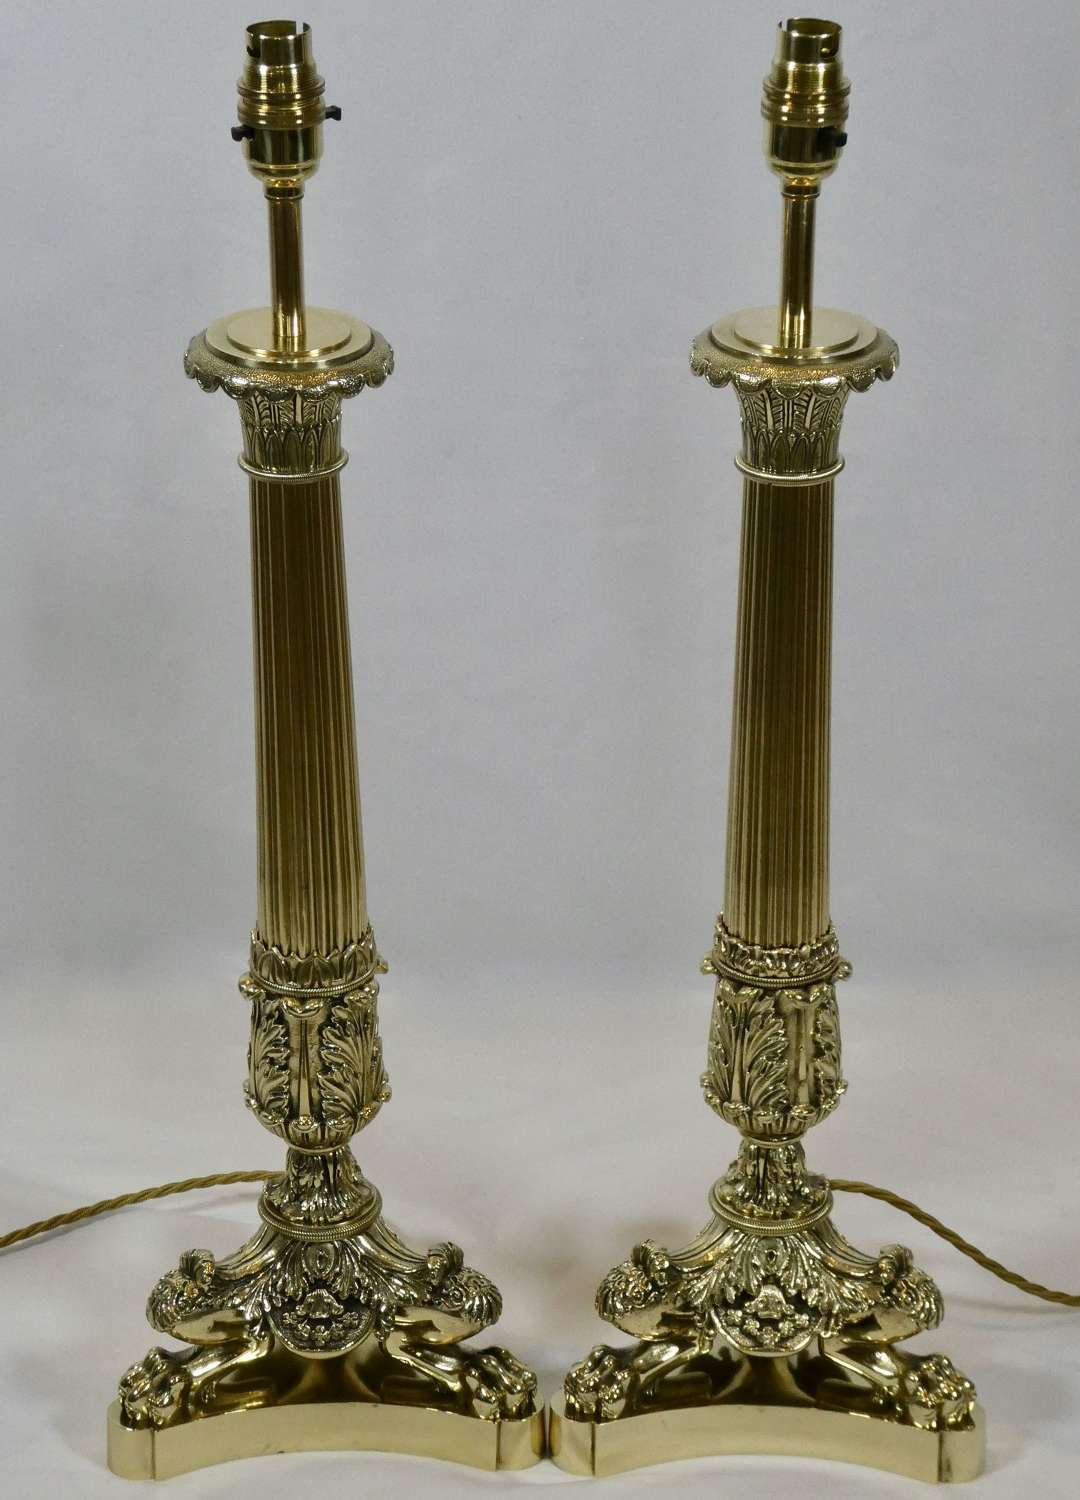 Pair of 2nd Empire Candlesticks Adapted as Lamps